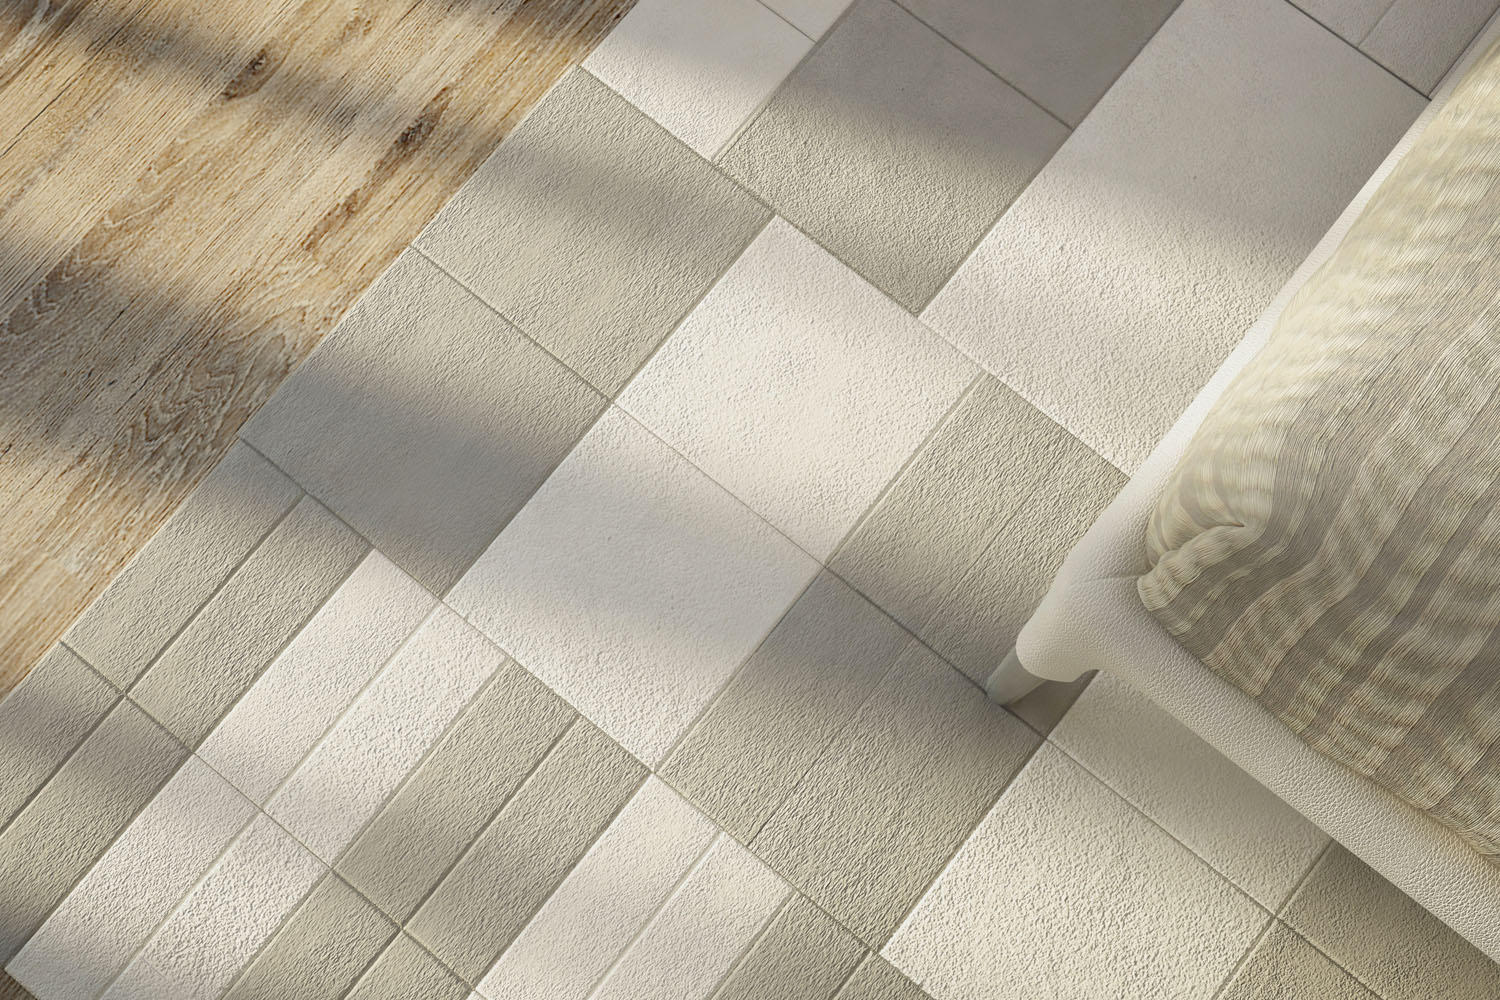 Suede leather tiles from laplle design architonic suede by laplle design suede by laplle design dailygadgetfo Gallery